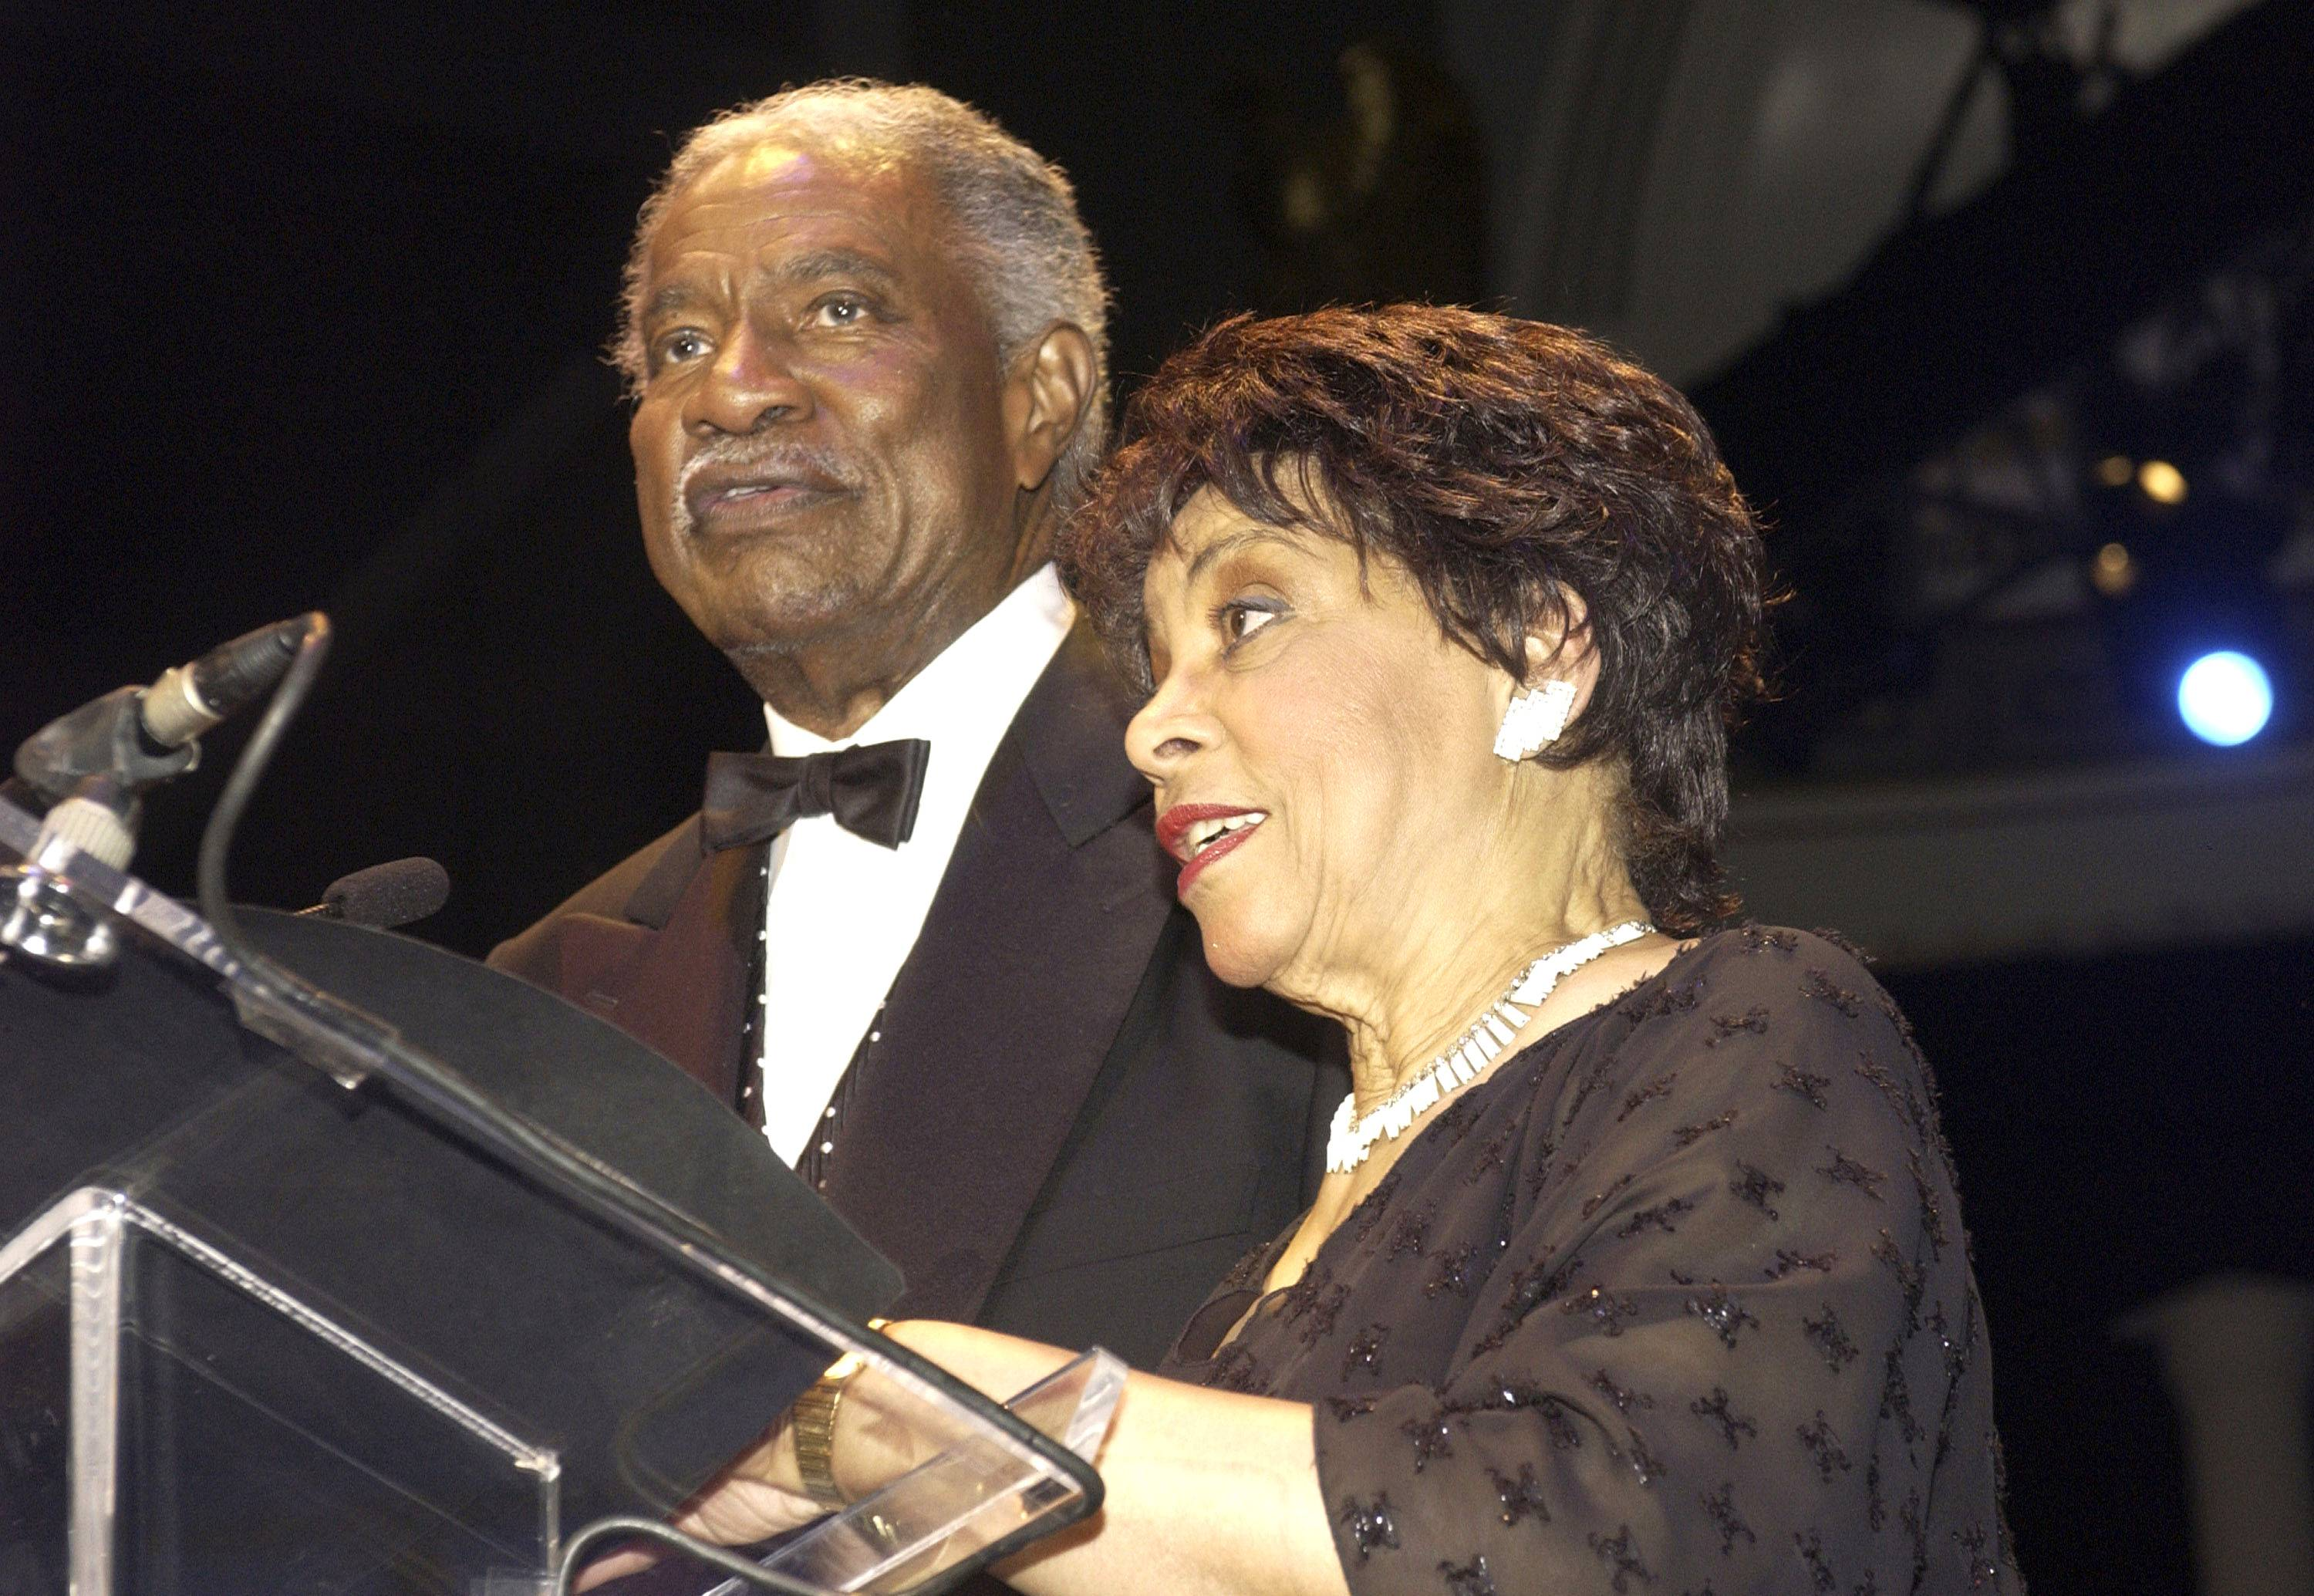 Ruby Dee and Ossie Davis - Ruby Dee and Ossie Davis had been married 56 years, before Davis passed away in 2005 at 87. The inseparable Hollywood couple became friends while performing in the Broadway drama Jeb in 1946. Years later, Davis proposed to Dee via telegram, and the couple married on Dec. 9, 1948.(Photo: Stephen Boitano/Getty Images)